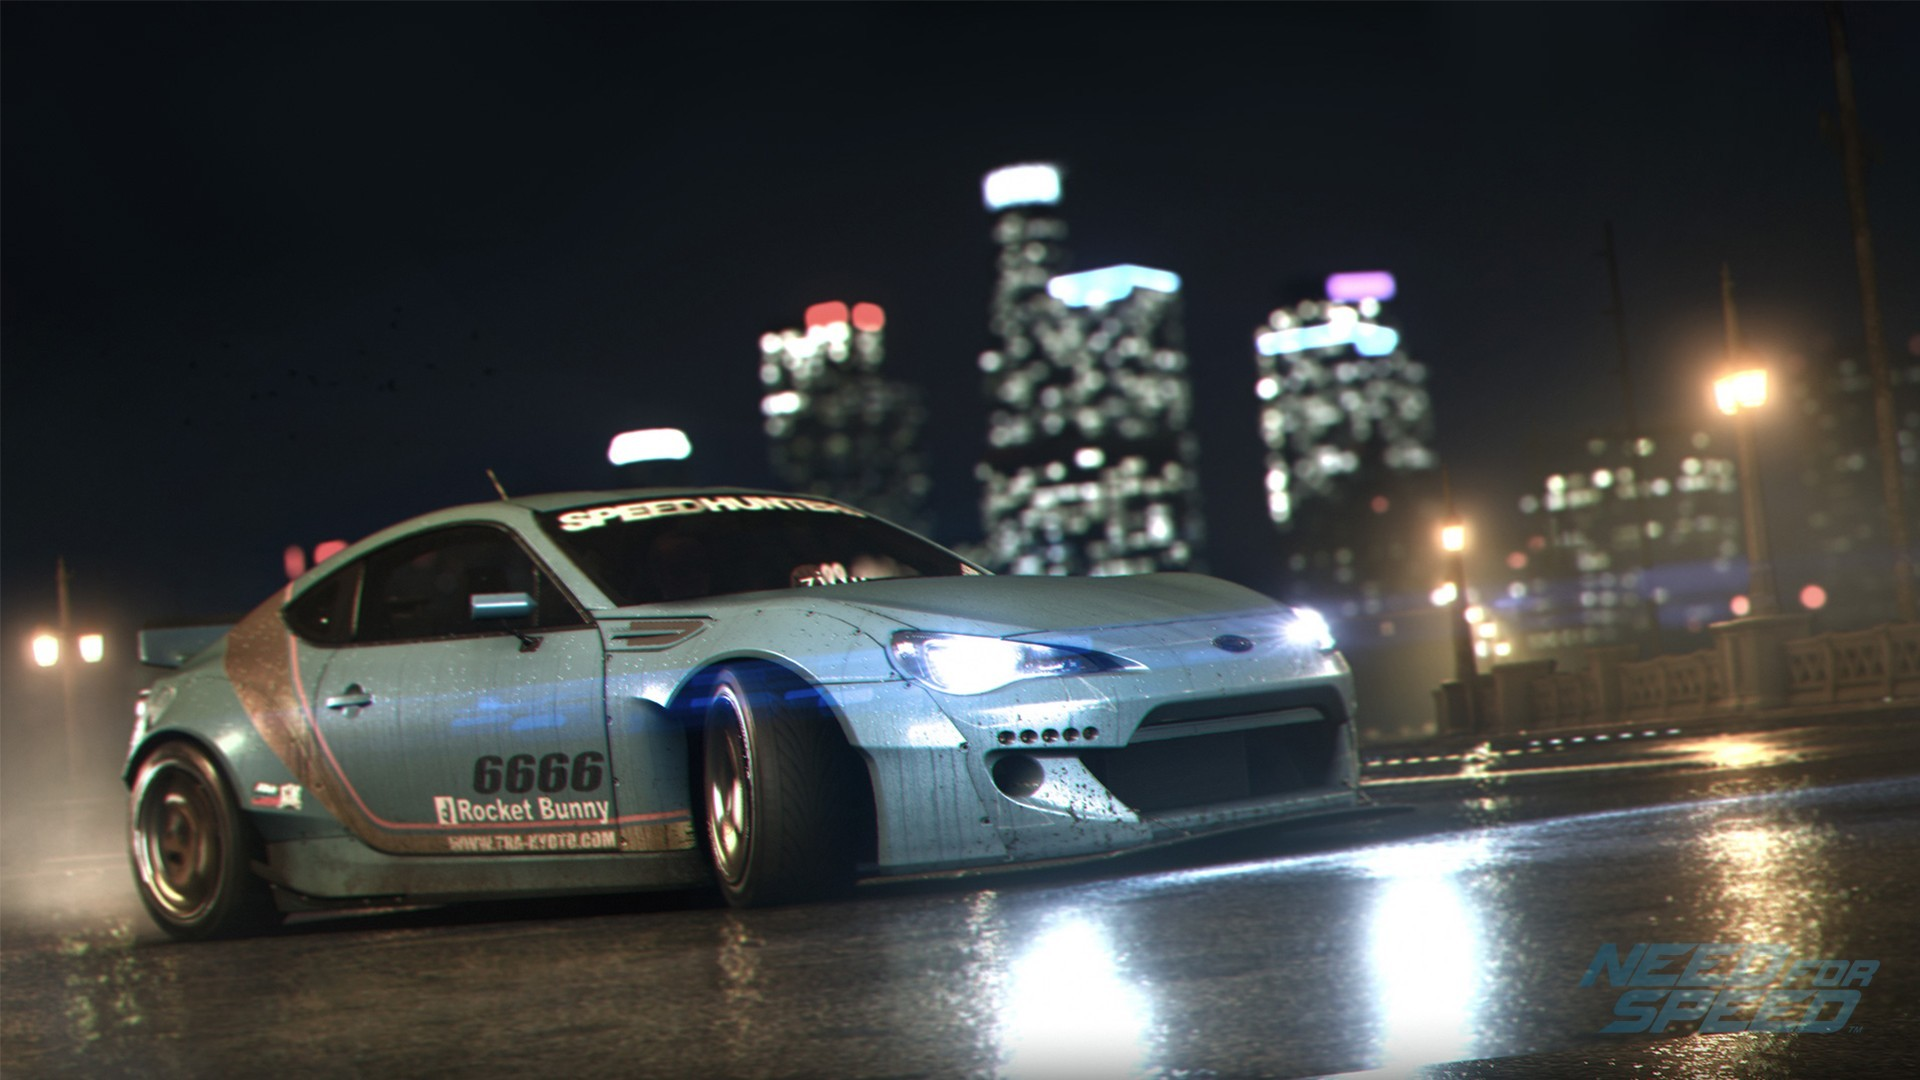 Res: 1920x1080, Need For Speed, 2015, Video Games, Car, Rocket Bunny Wallpapers HD /  Desktop and Mobile Backgrounds